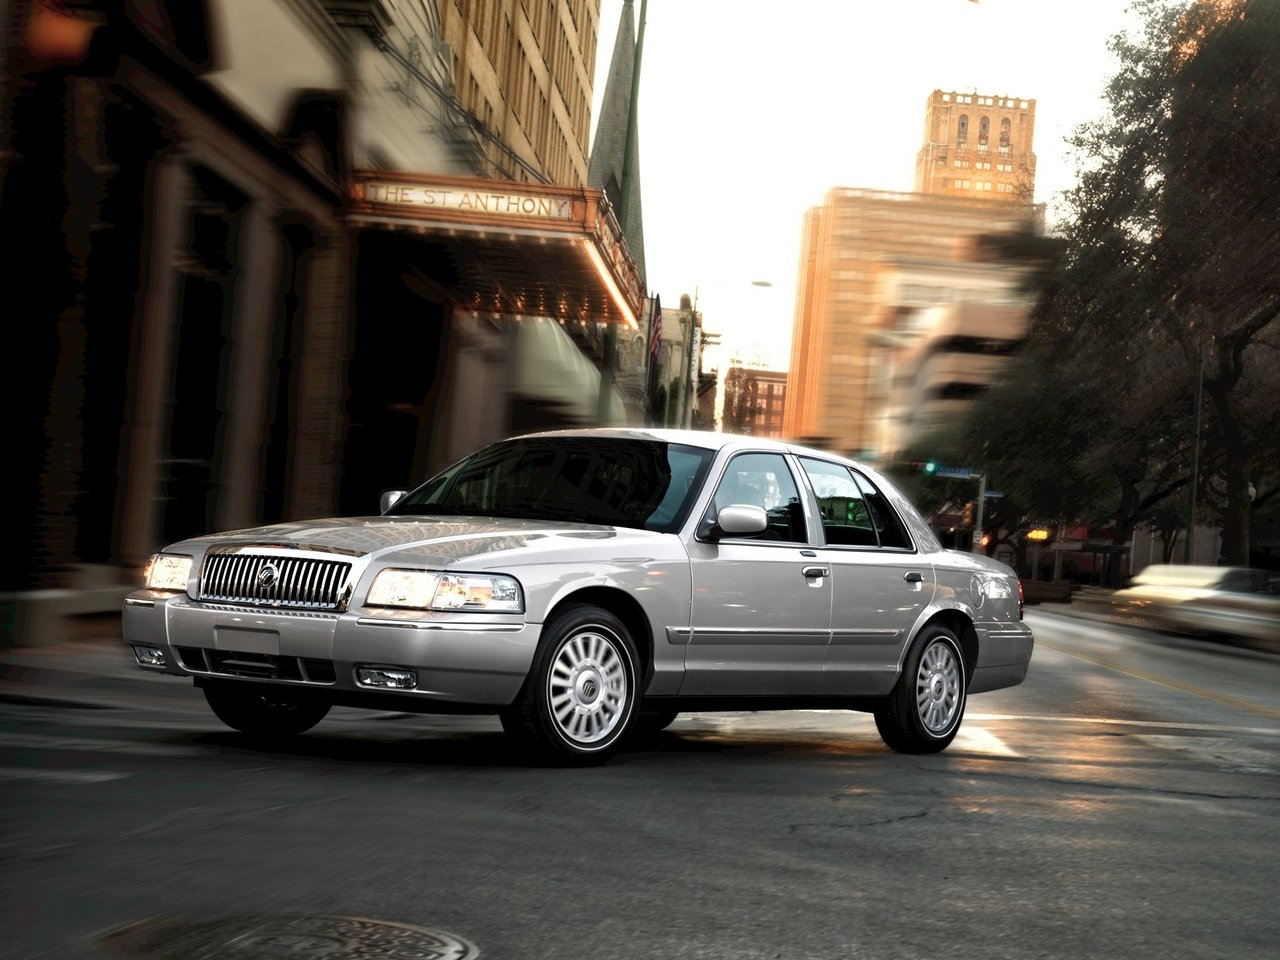 Автомобиль Mercury Grand Marquis